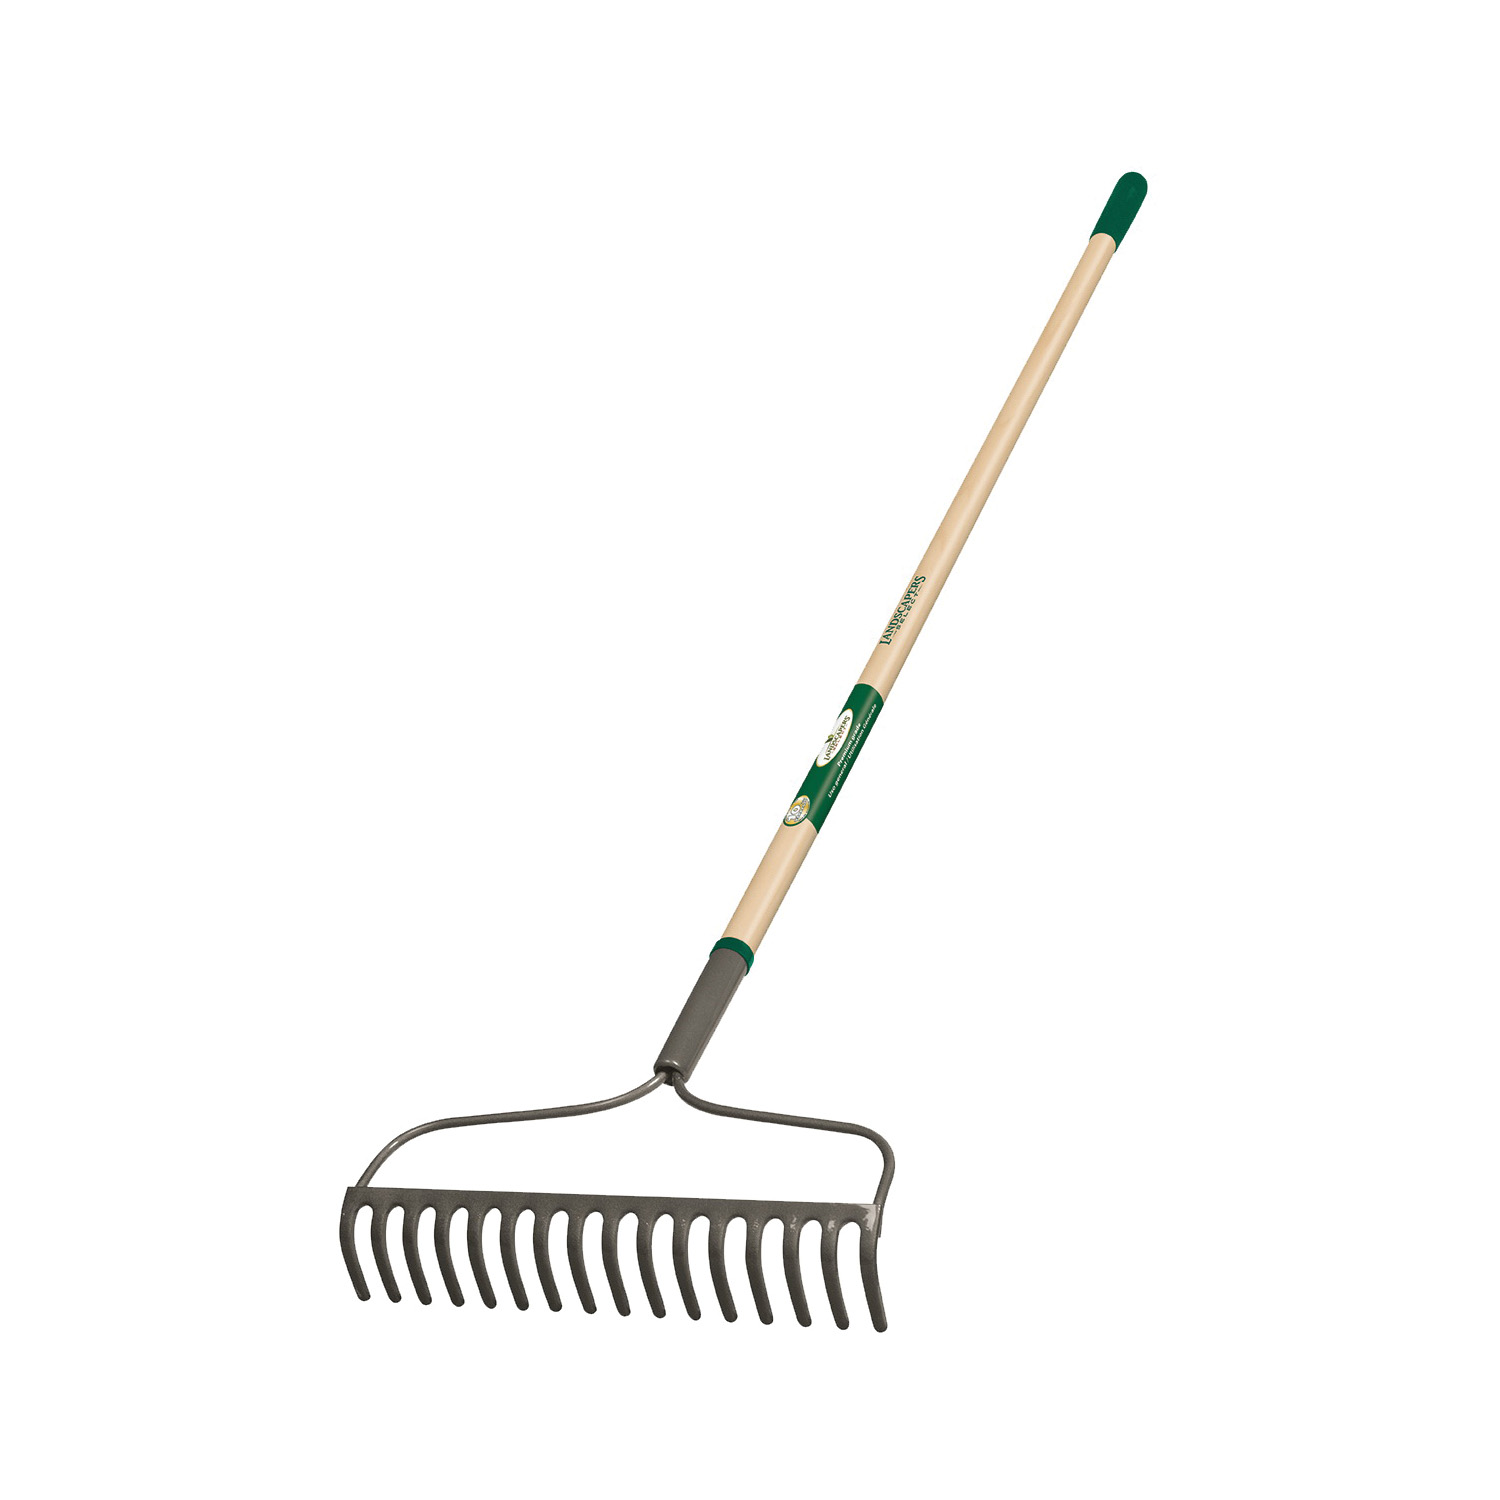 Picture of Landscapers Select 34582 Bow Rake, 16 in W Head, 16 -Tine, Steel Tine, 54 in L Handle